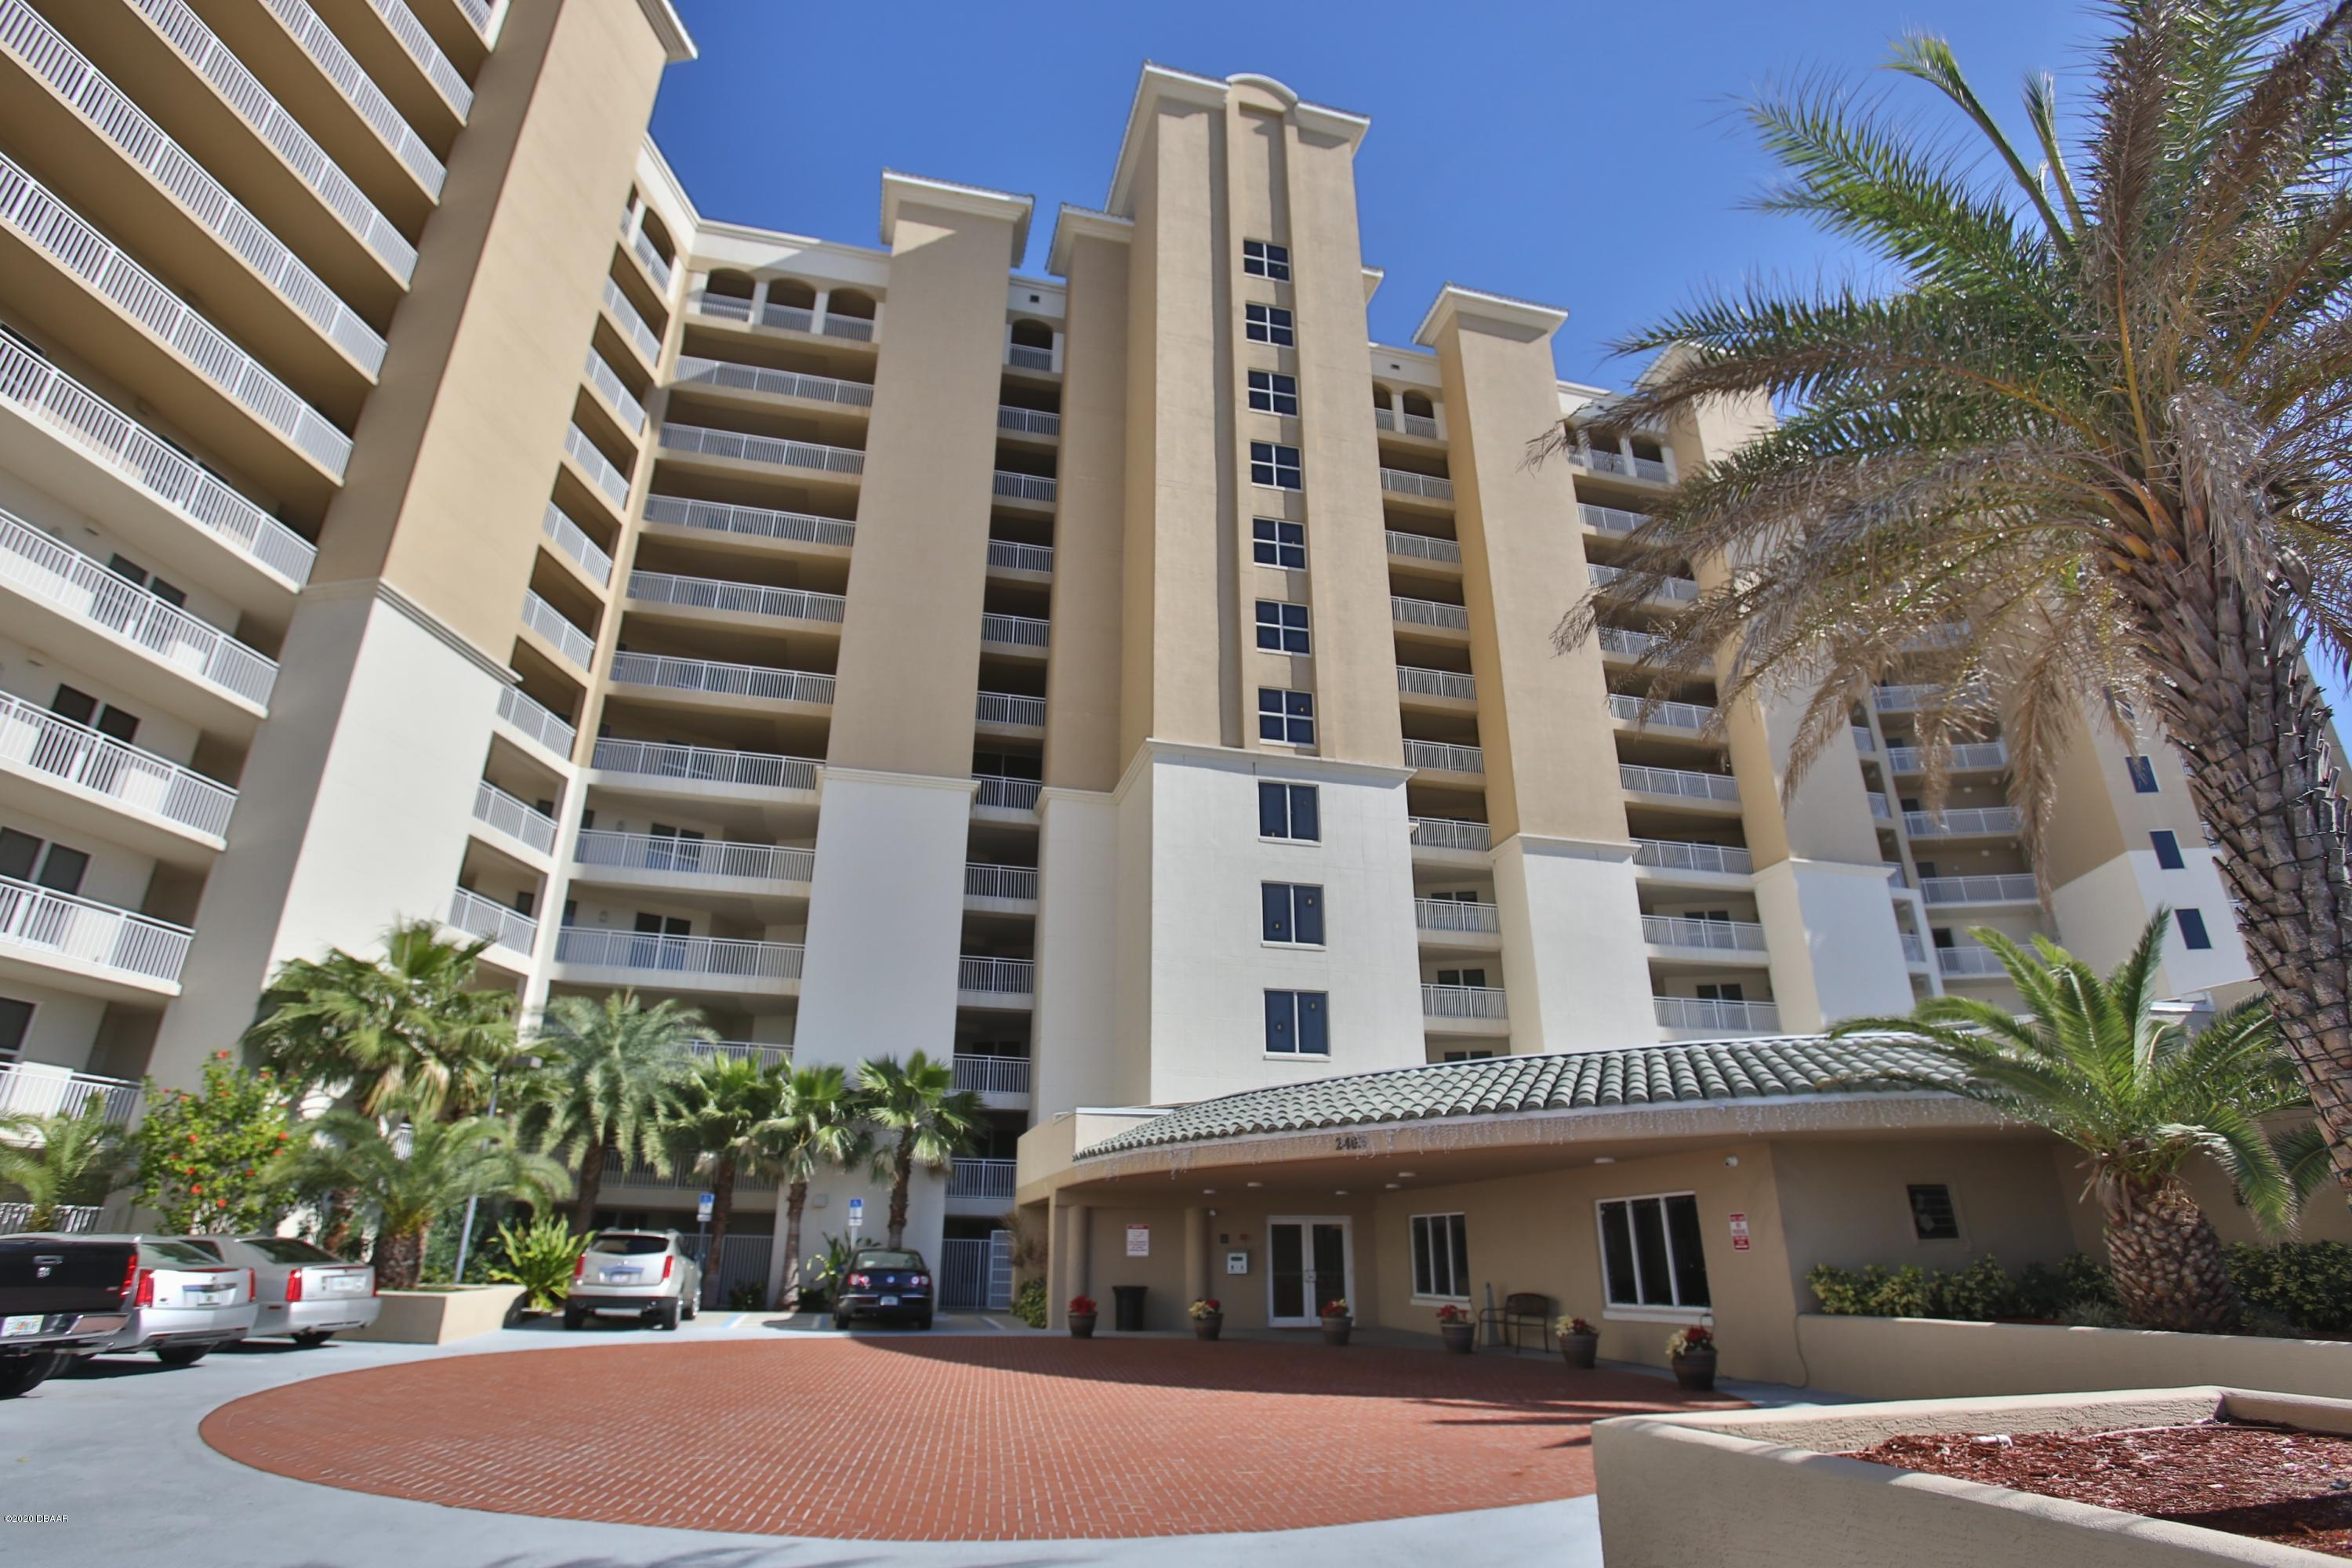 Photo of 2403 S Atlantic Avenue #502, Daytona Beach Shores, FL 32118